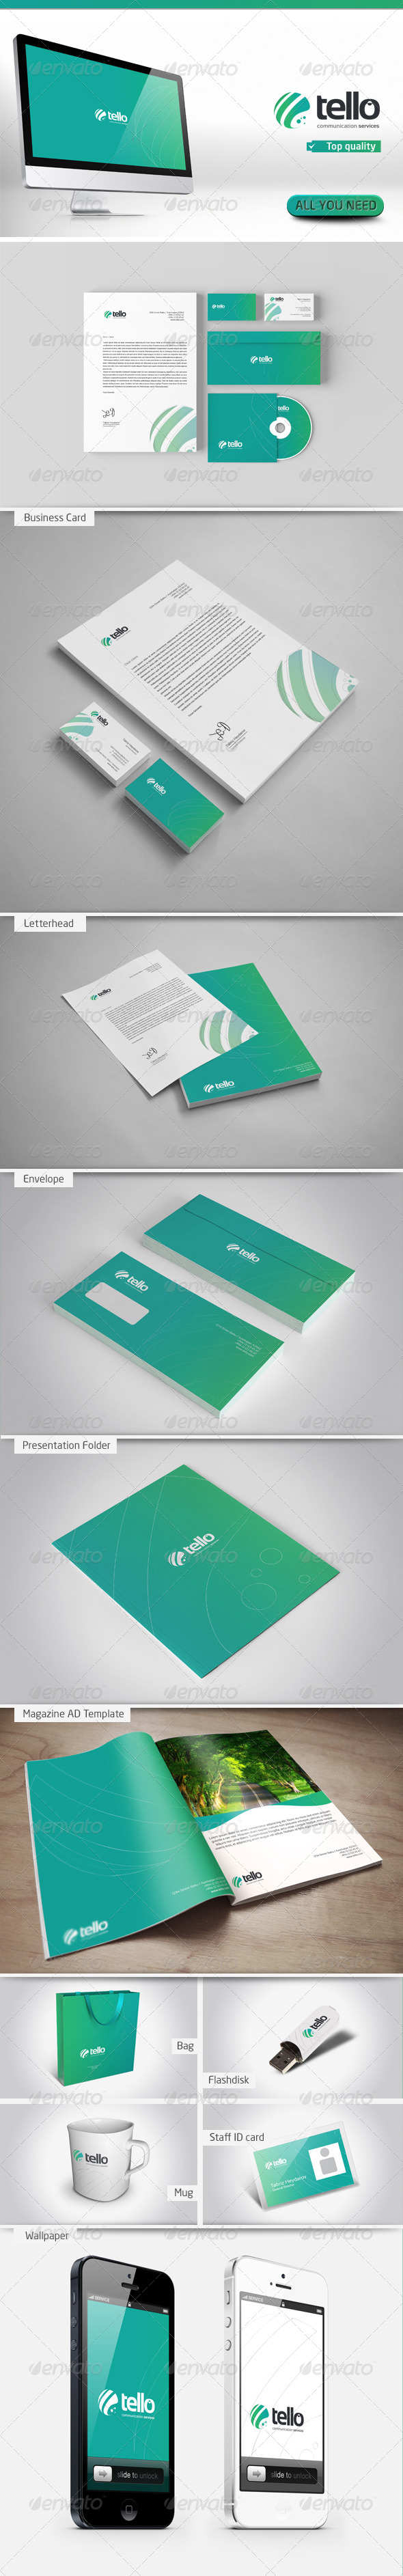 GraphicRiver Tello Corporate Identity 5523316